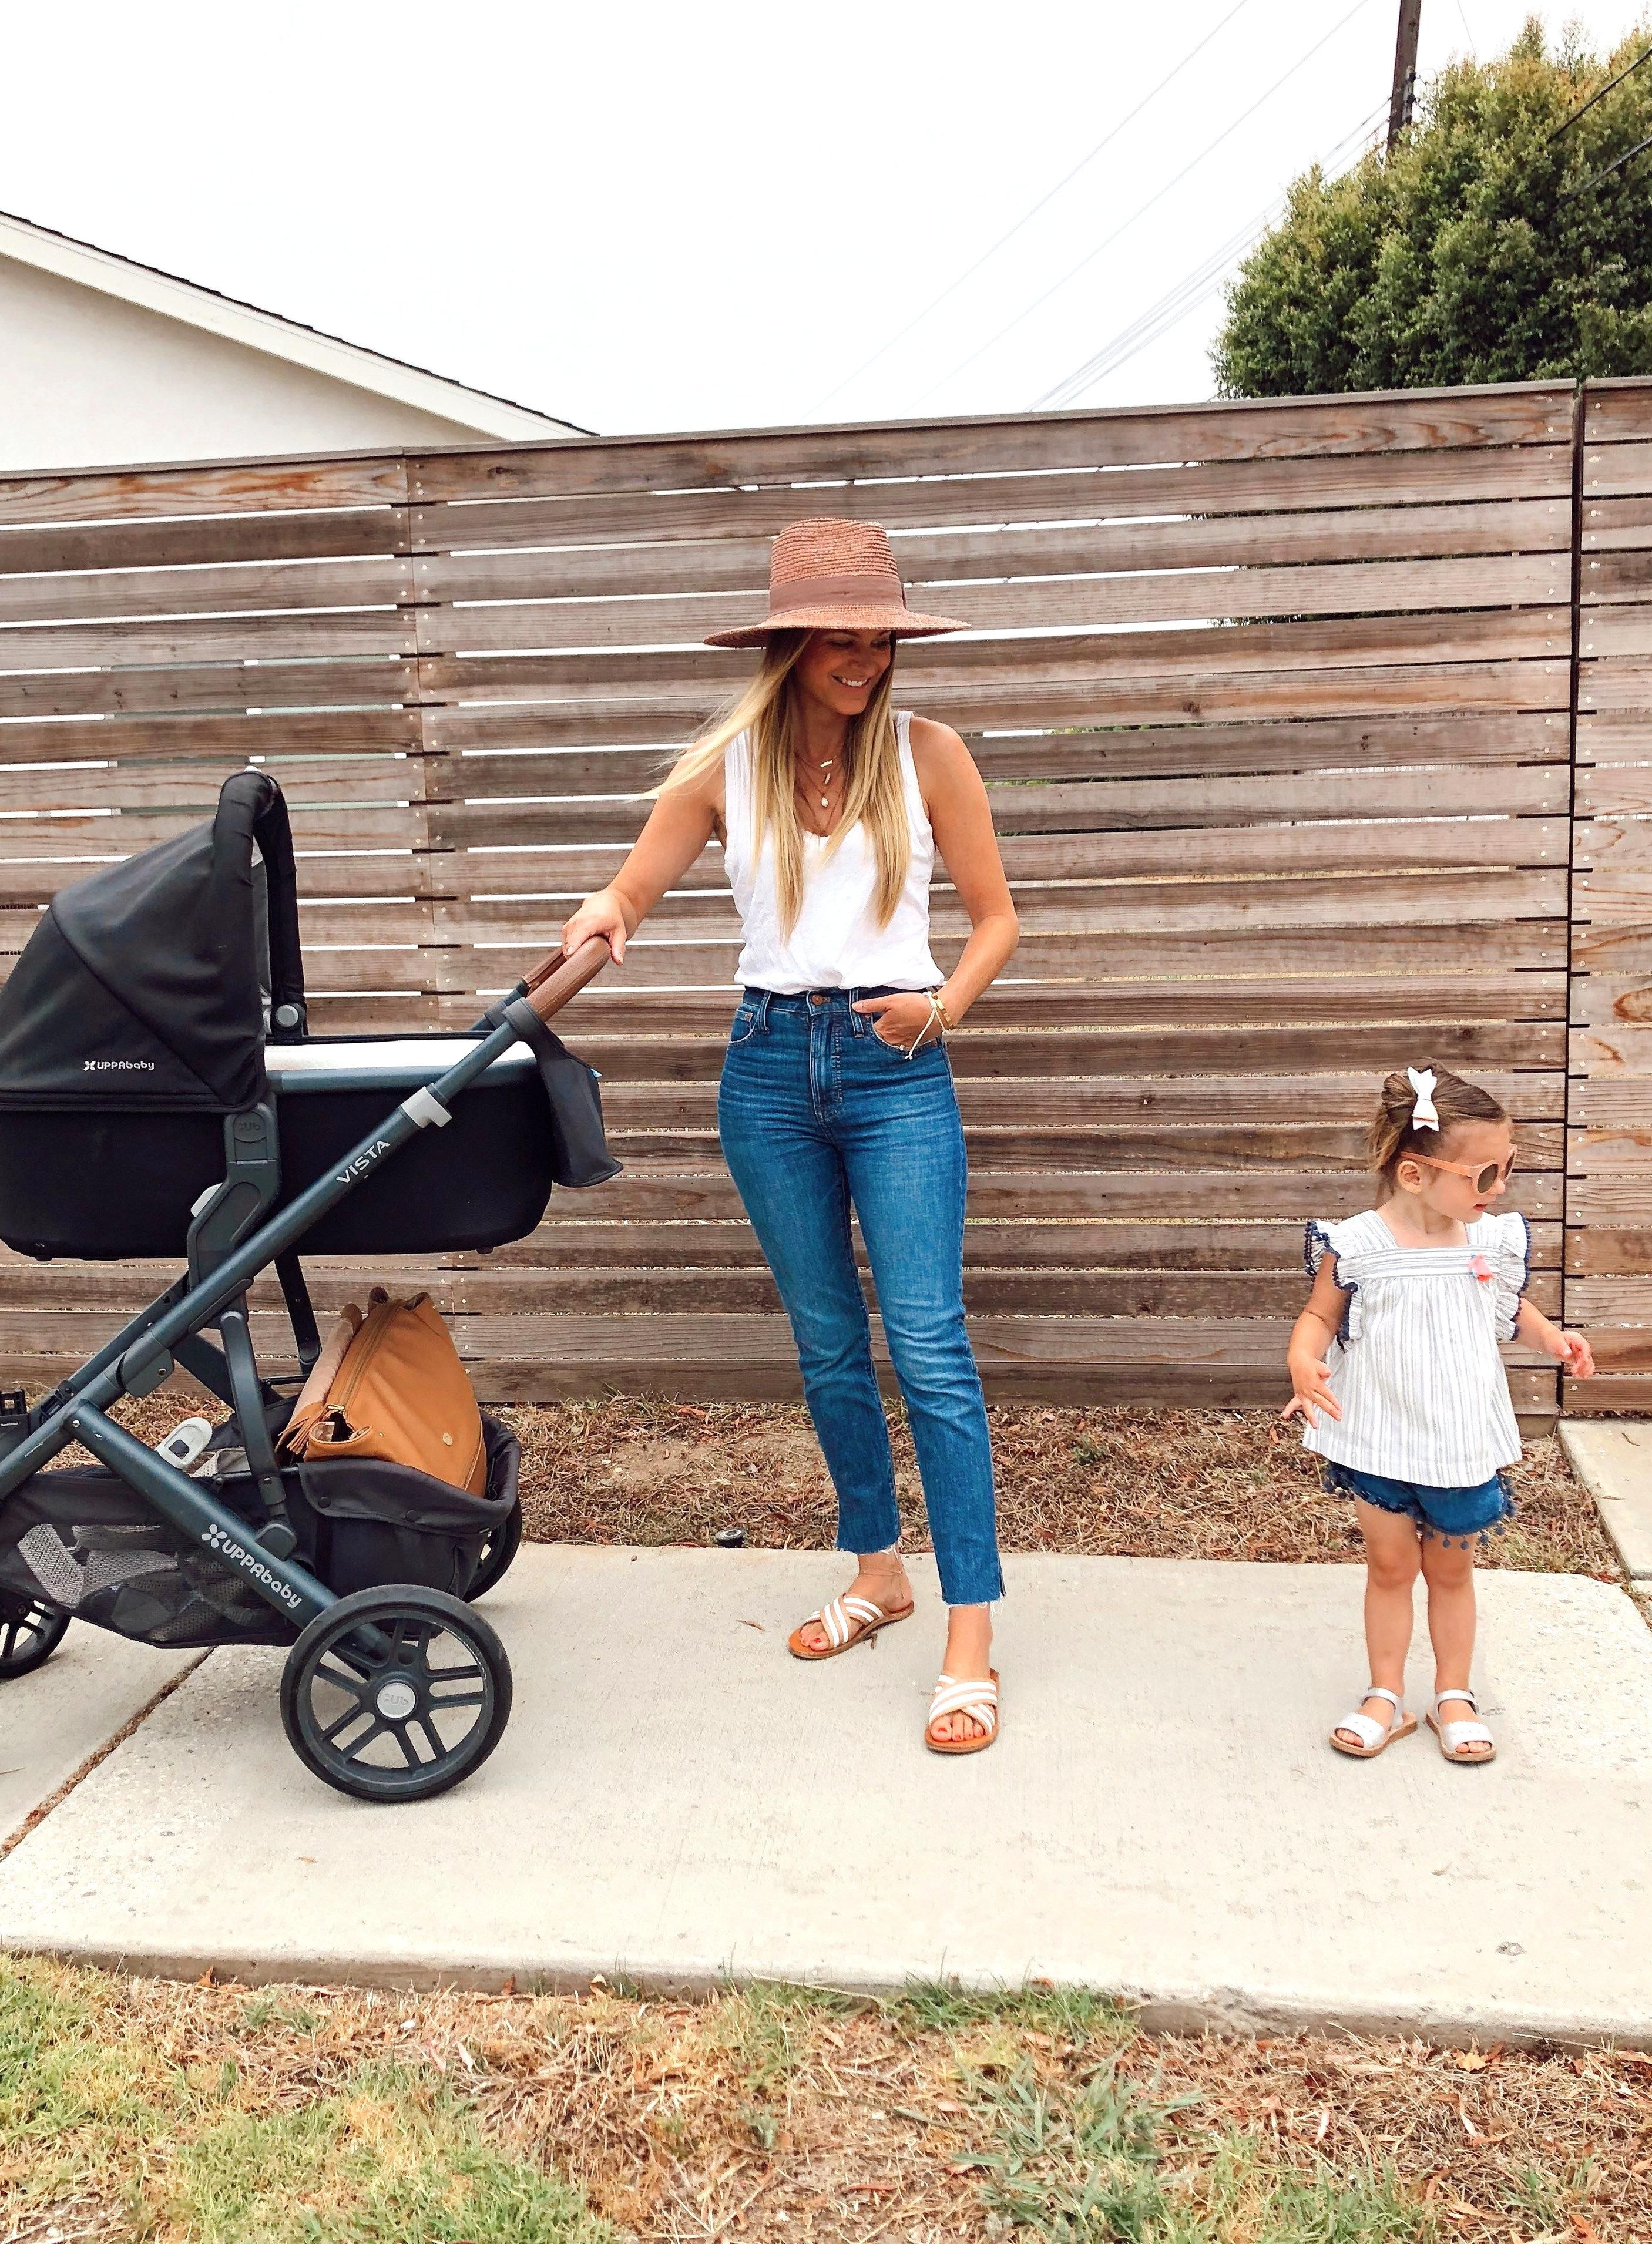 UPPAbaby Vista Double Stroller in 2020 Uppababy vista